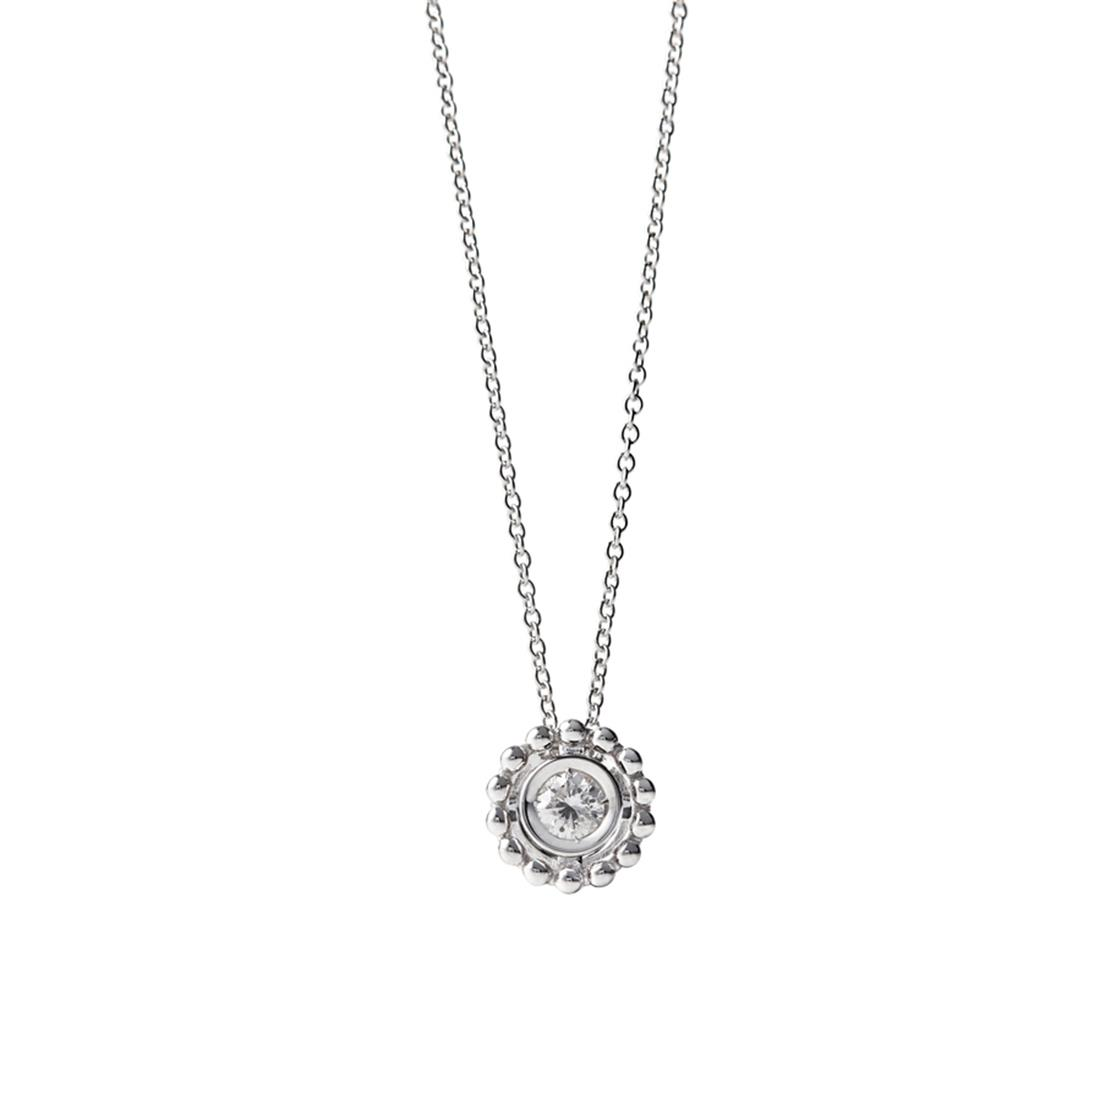 18 kt white gold necklace set with 0,12 ct diamond - Chain length: 42 cm